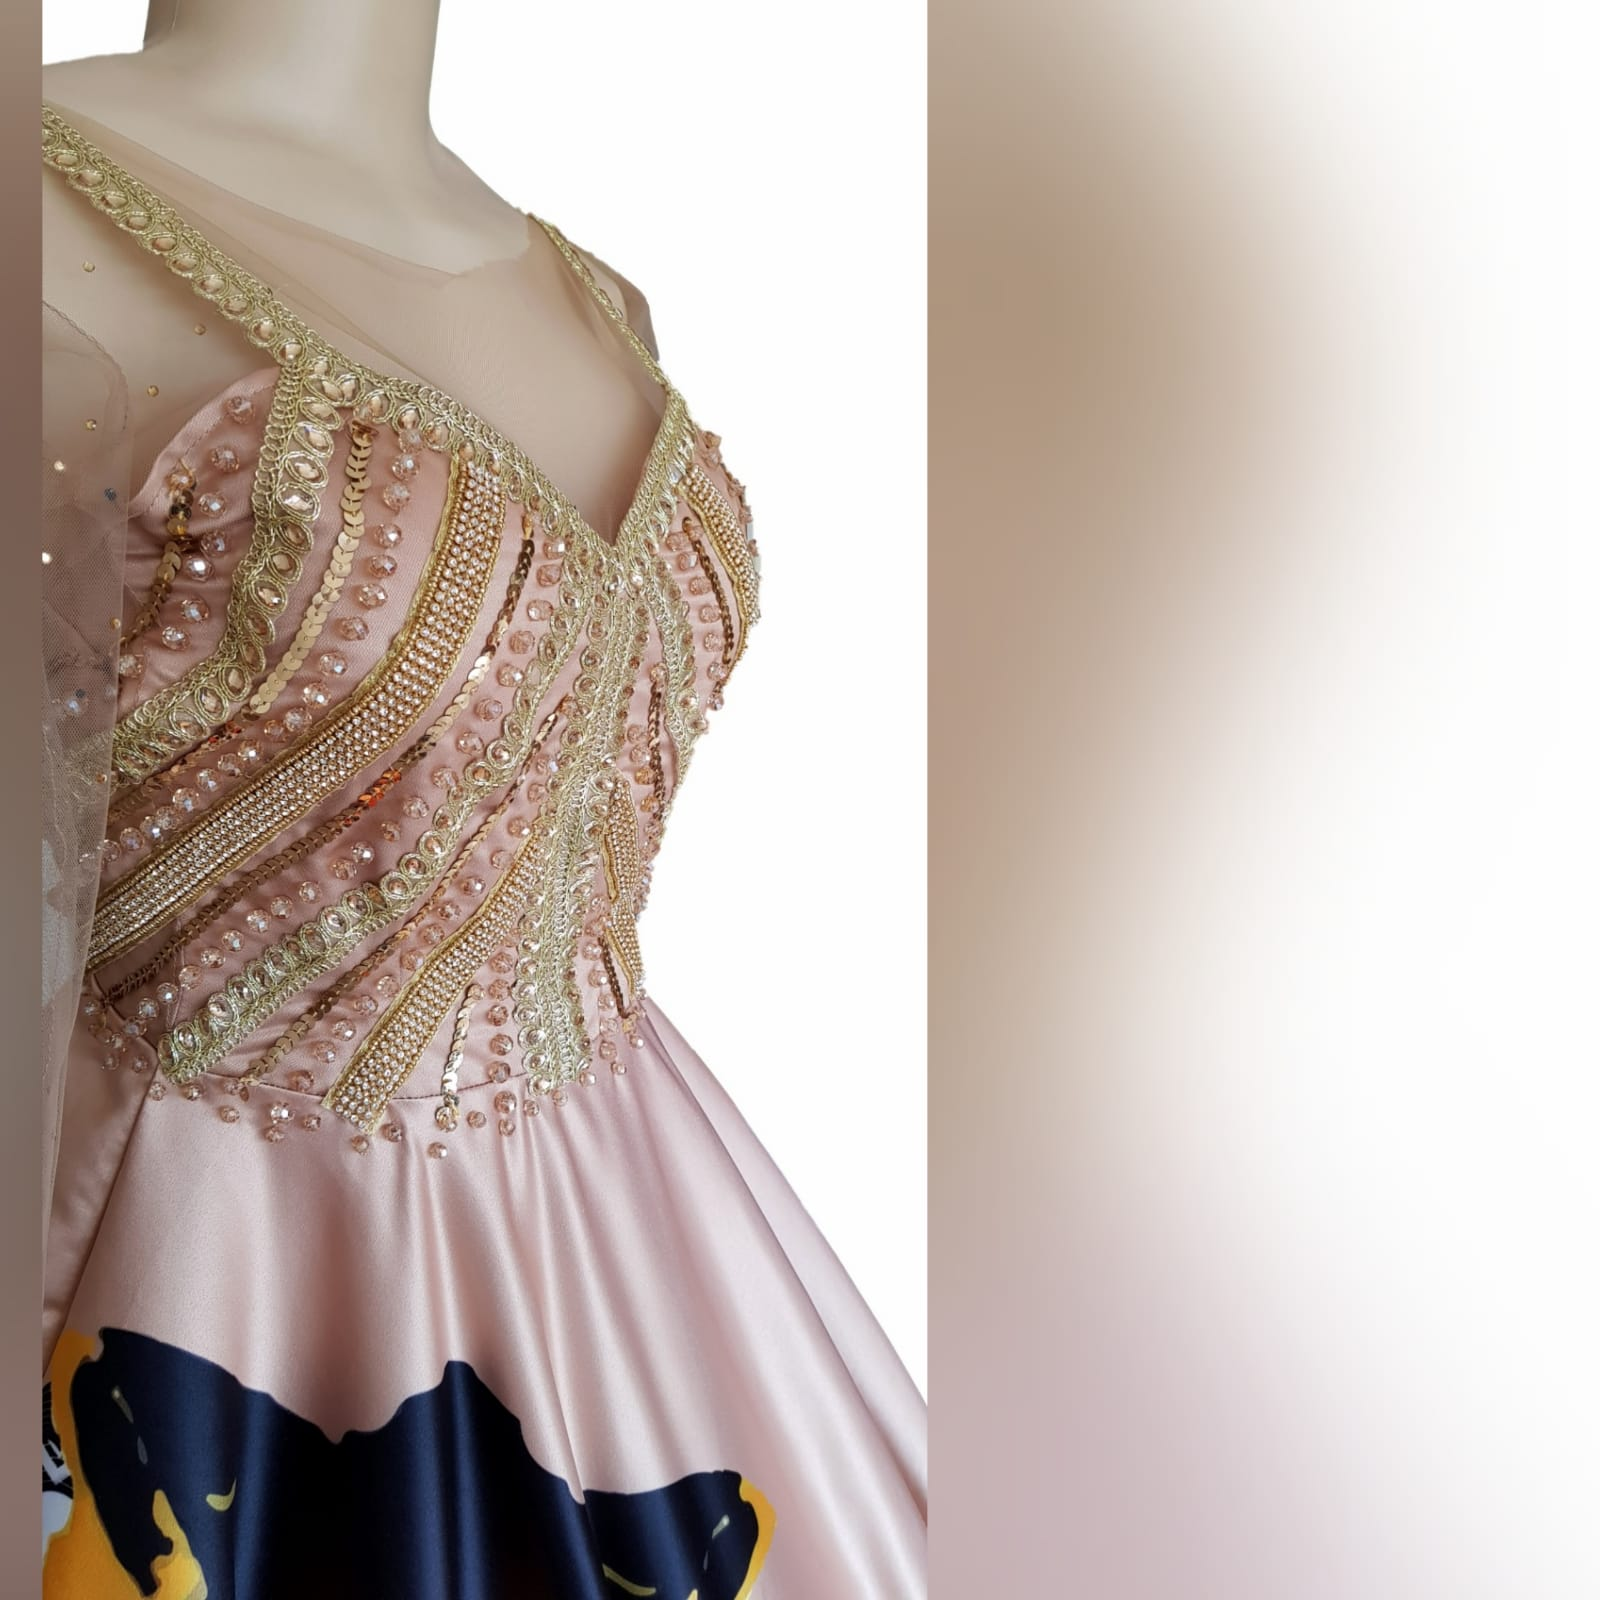 Gold ball gown for beauty pageant 3 gold ball gown for beauty pageant, bodice detailed in gold beadwork with sheer long sleeves, with a v open back. With traditional kaleidoscope print